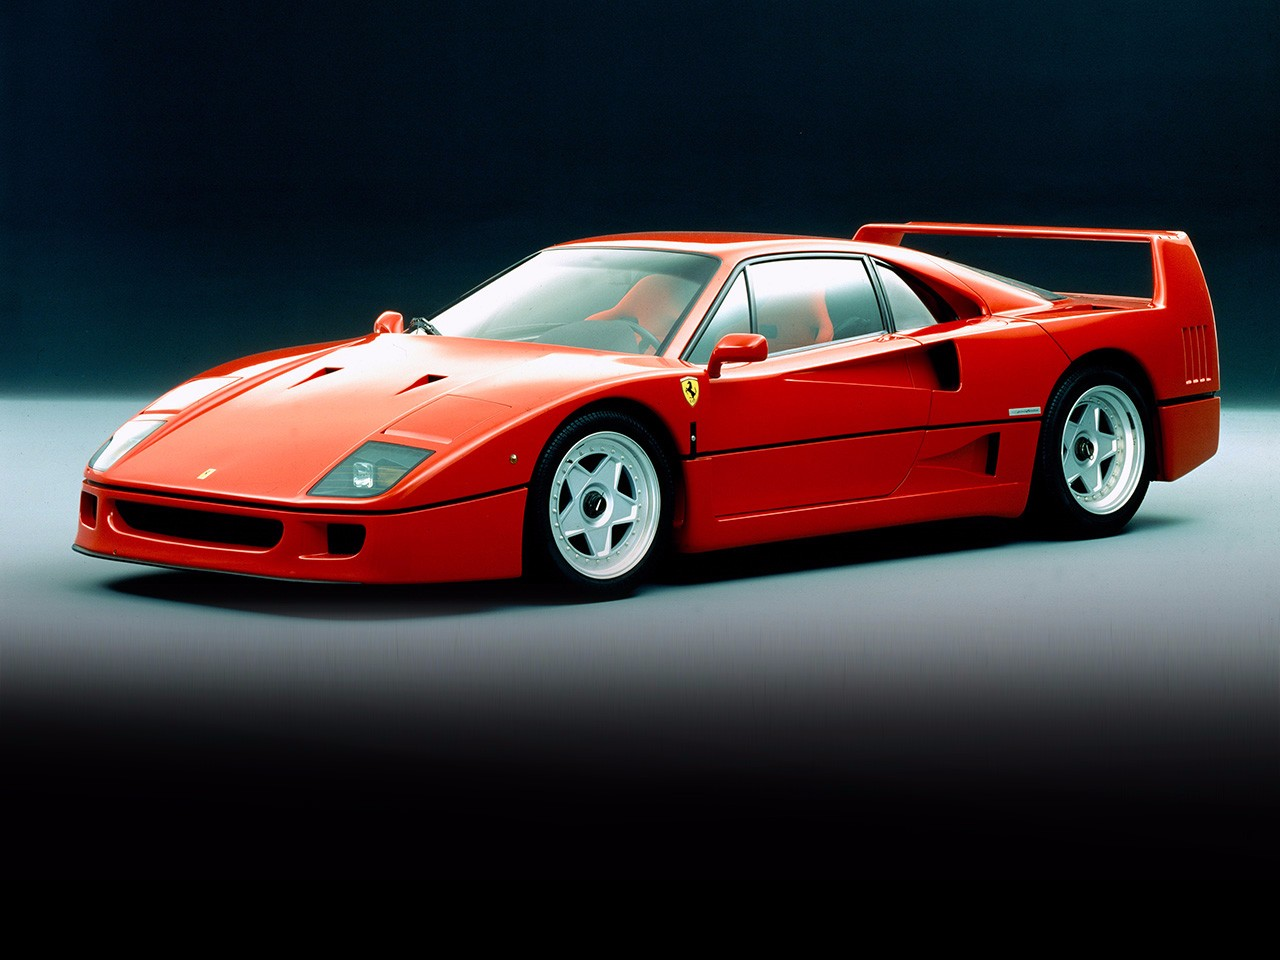 30th anniversary of the F40